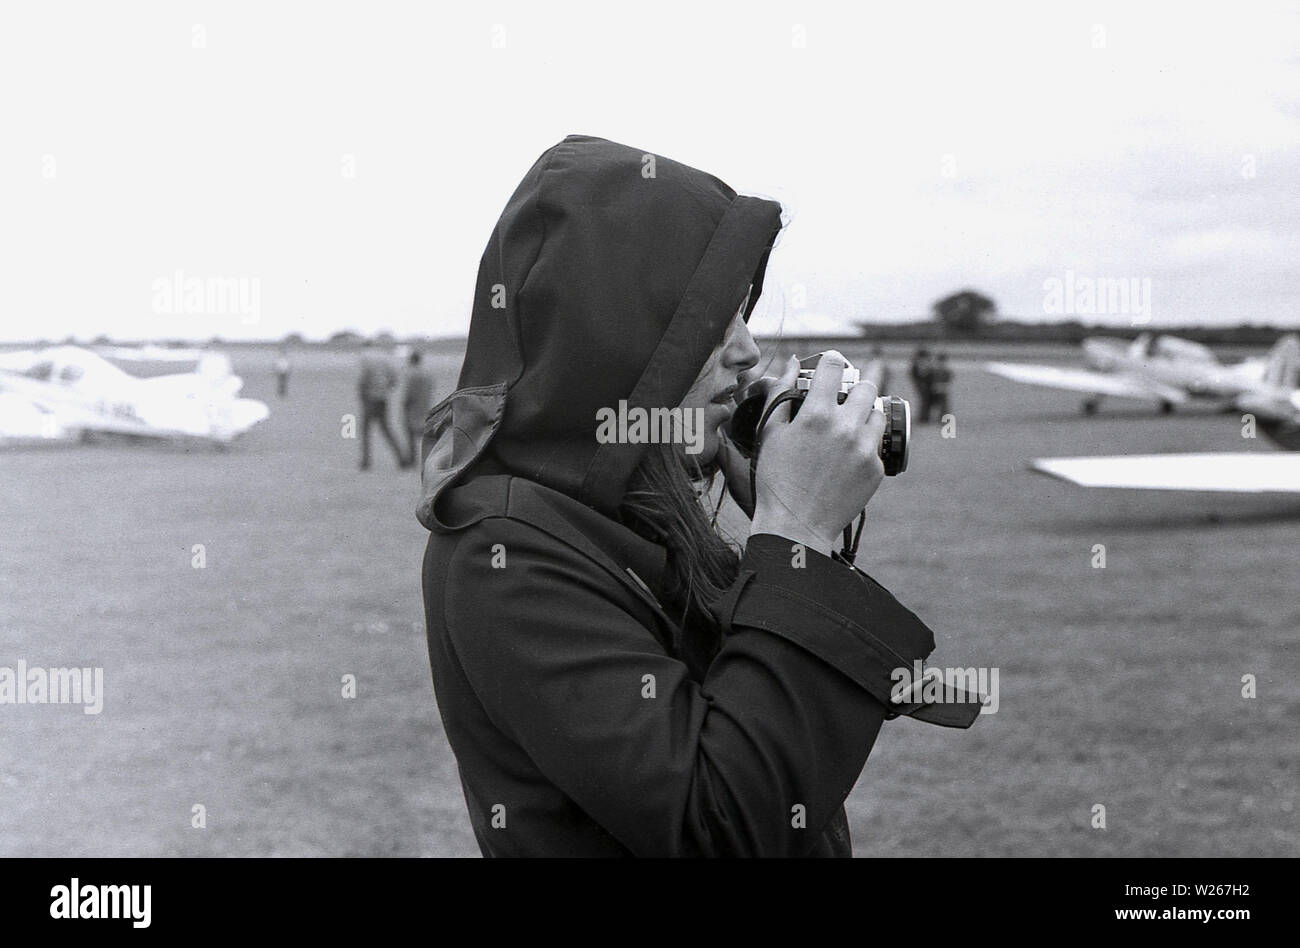 1970s, historical, a young women wearing a raincoat with its hood up over her hair, holding a film camera, taking photographs at an airshow, Old Warden Aerodrome, Biggleswade, England, UK. - Stock Image